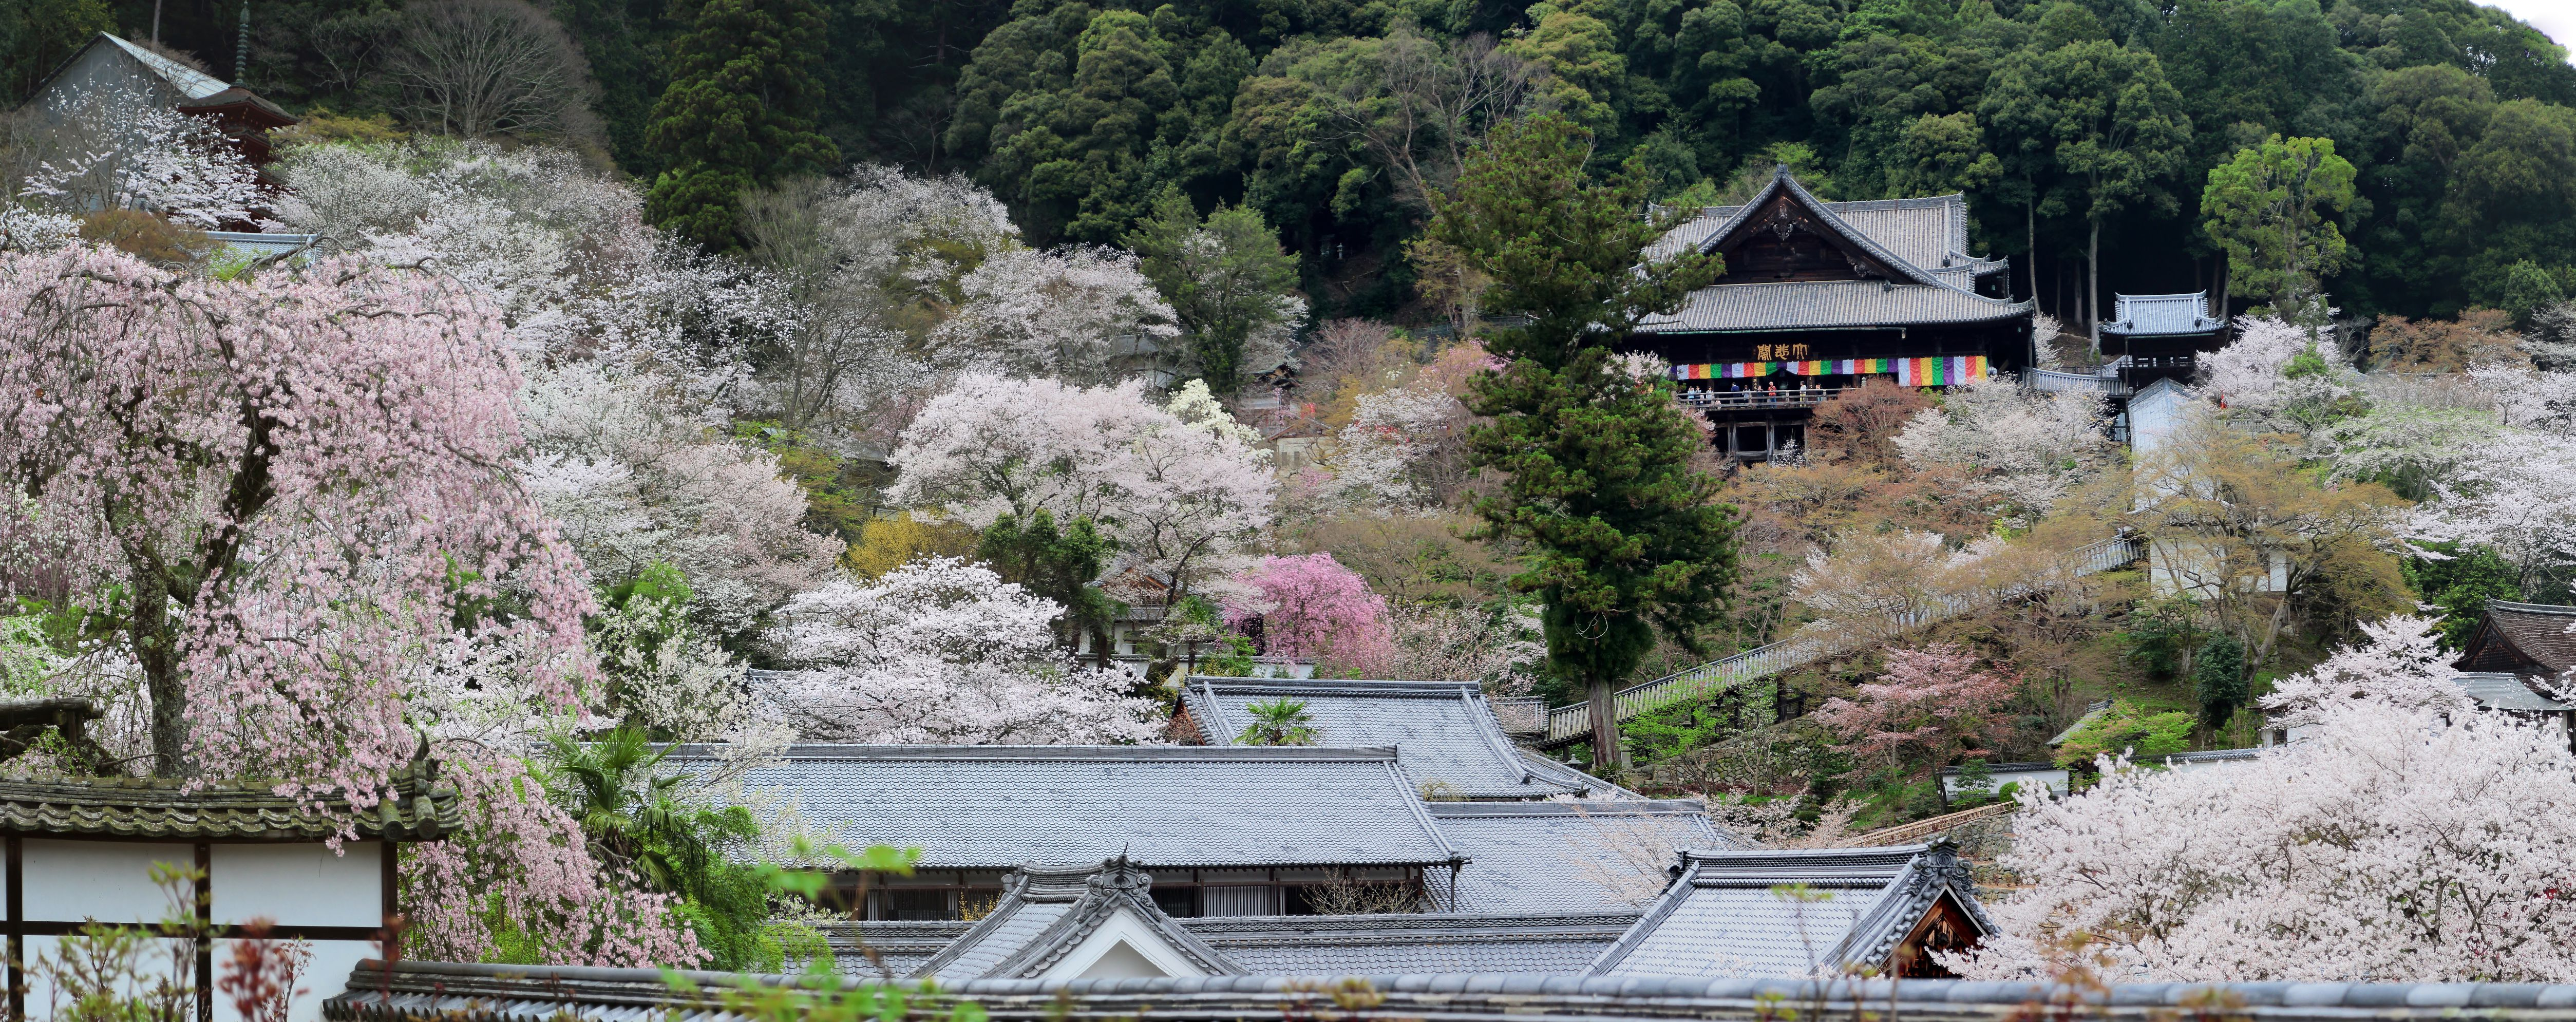 Hana Matsuri often coincides with the blooming of cherry blossoms. Hasedera temple in Nara Prefecture is nearly buried in blossoms.